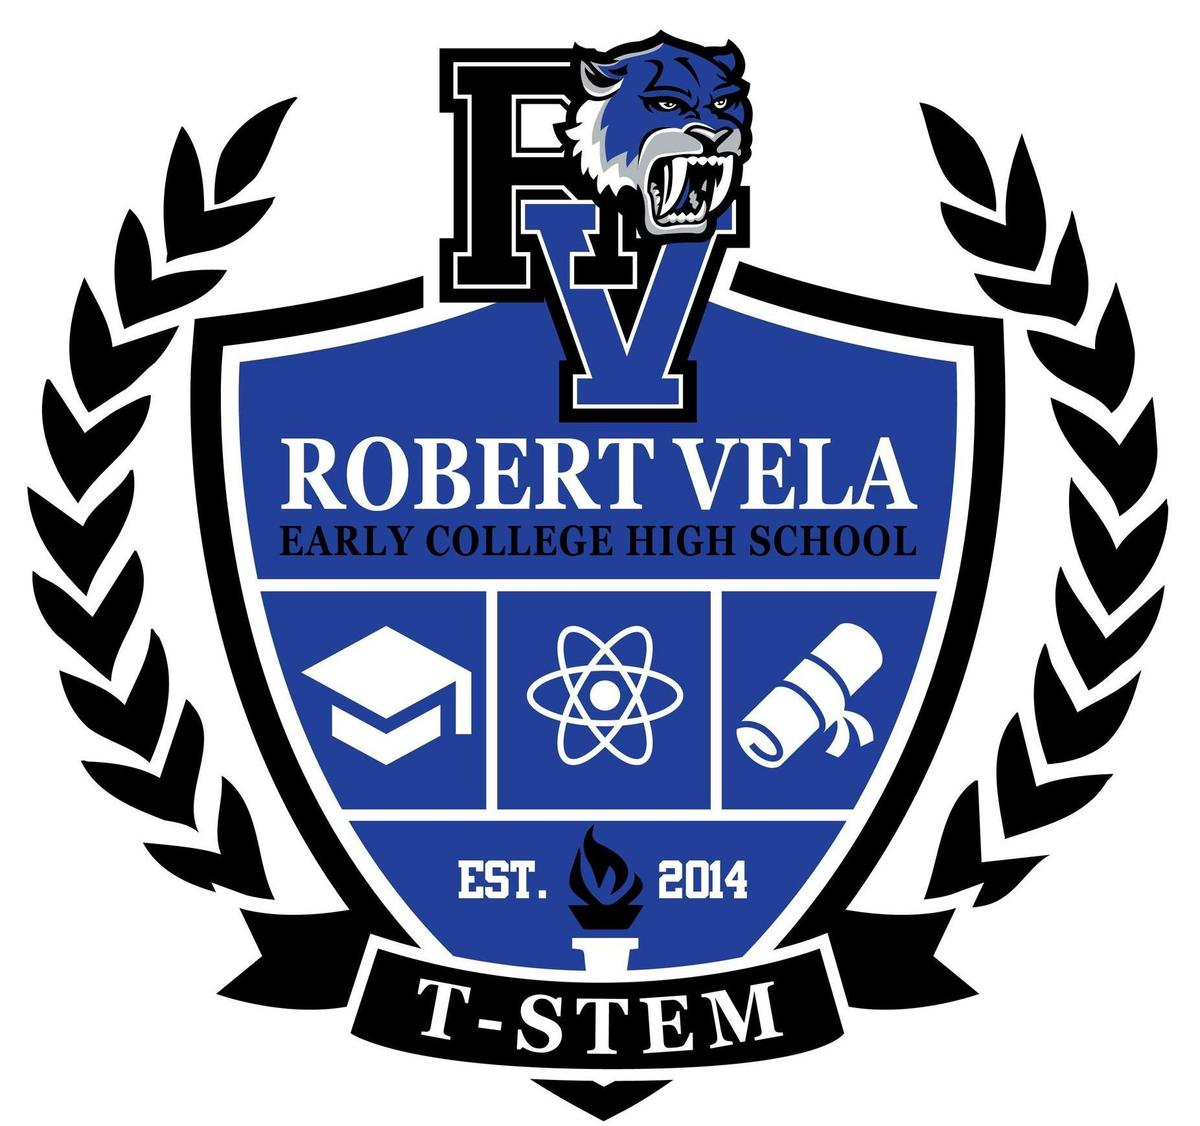 Robert Vela Early College HS